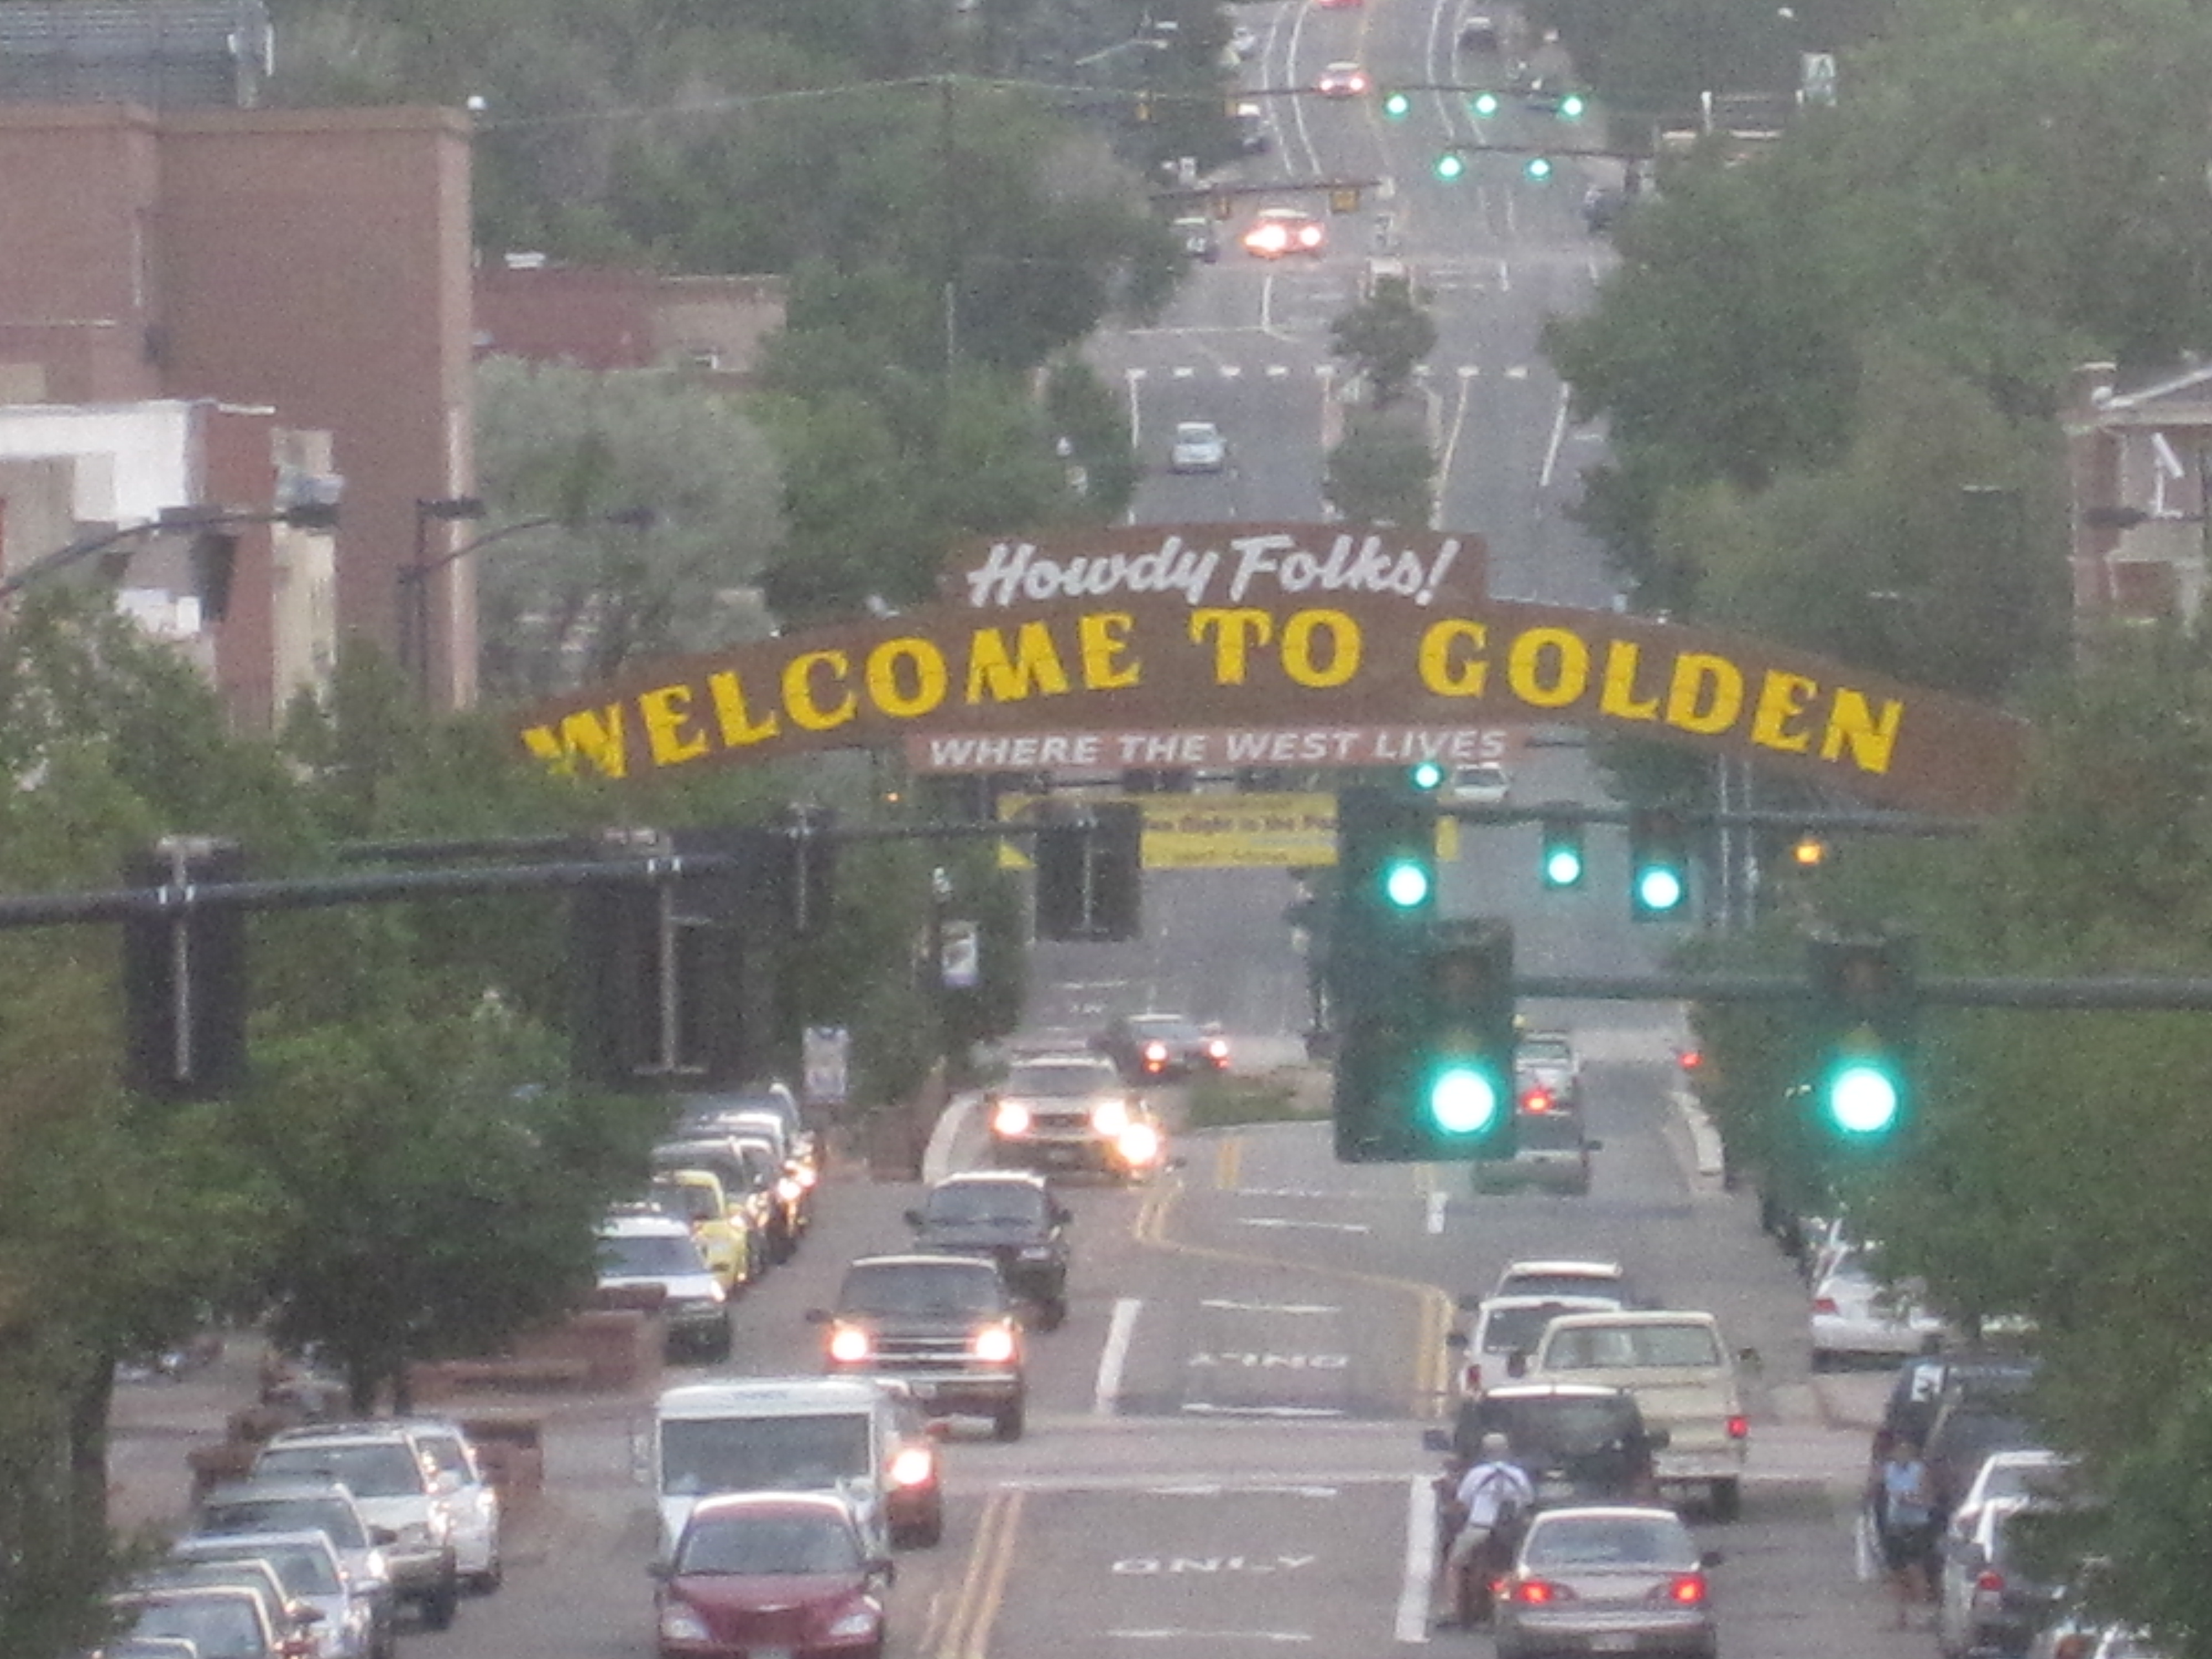 These Are The 10 Oldest Cities In Colorado - HomeSnacks